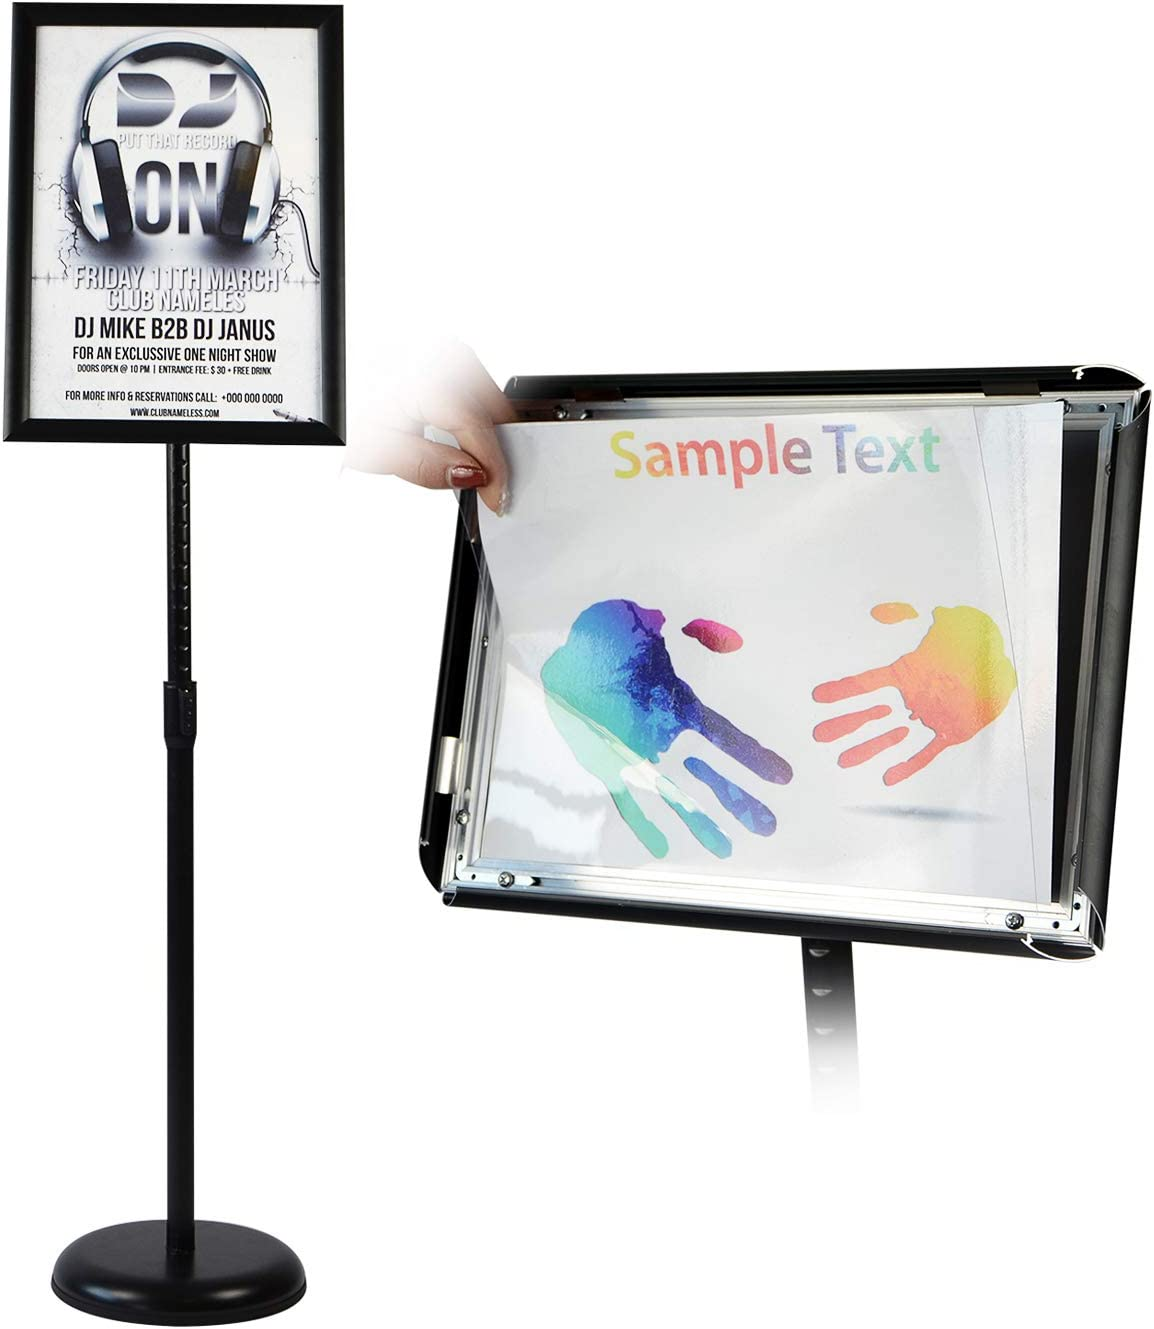 T-SIGN Adjustable Pedestal Poster Stand Aluminum Snap Open Frame for 8.5 x 11 Inch, Vertical and Horizontal View Sign Displayed, Black, Round Base